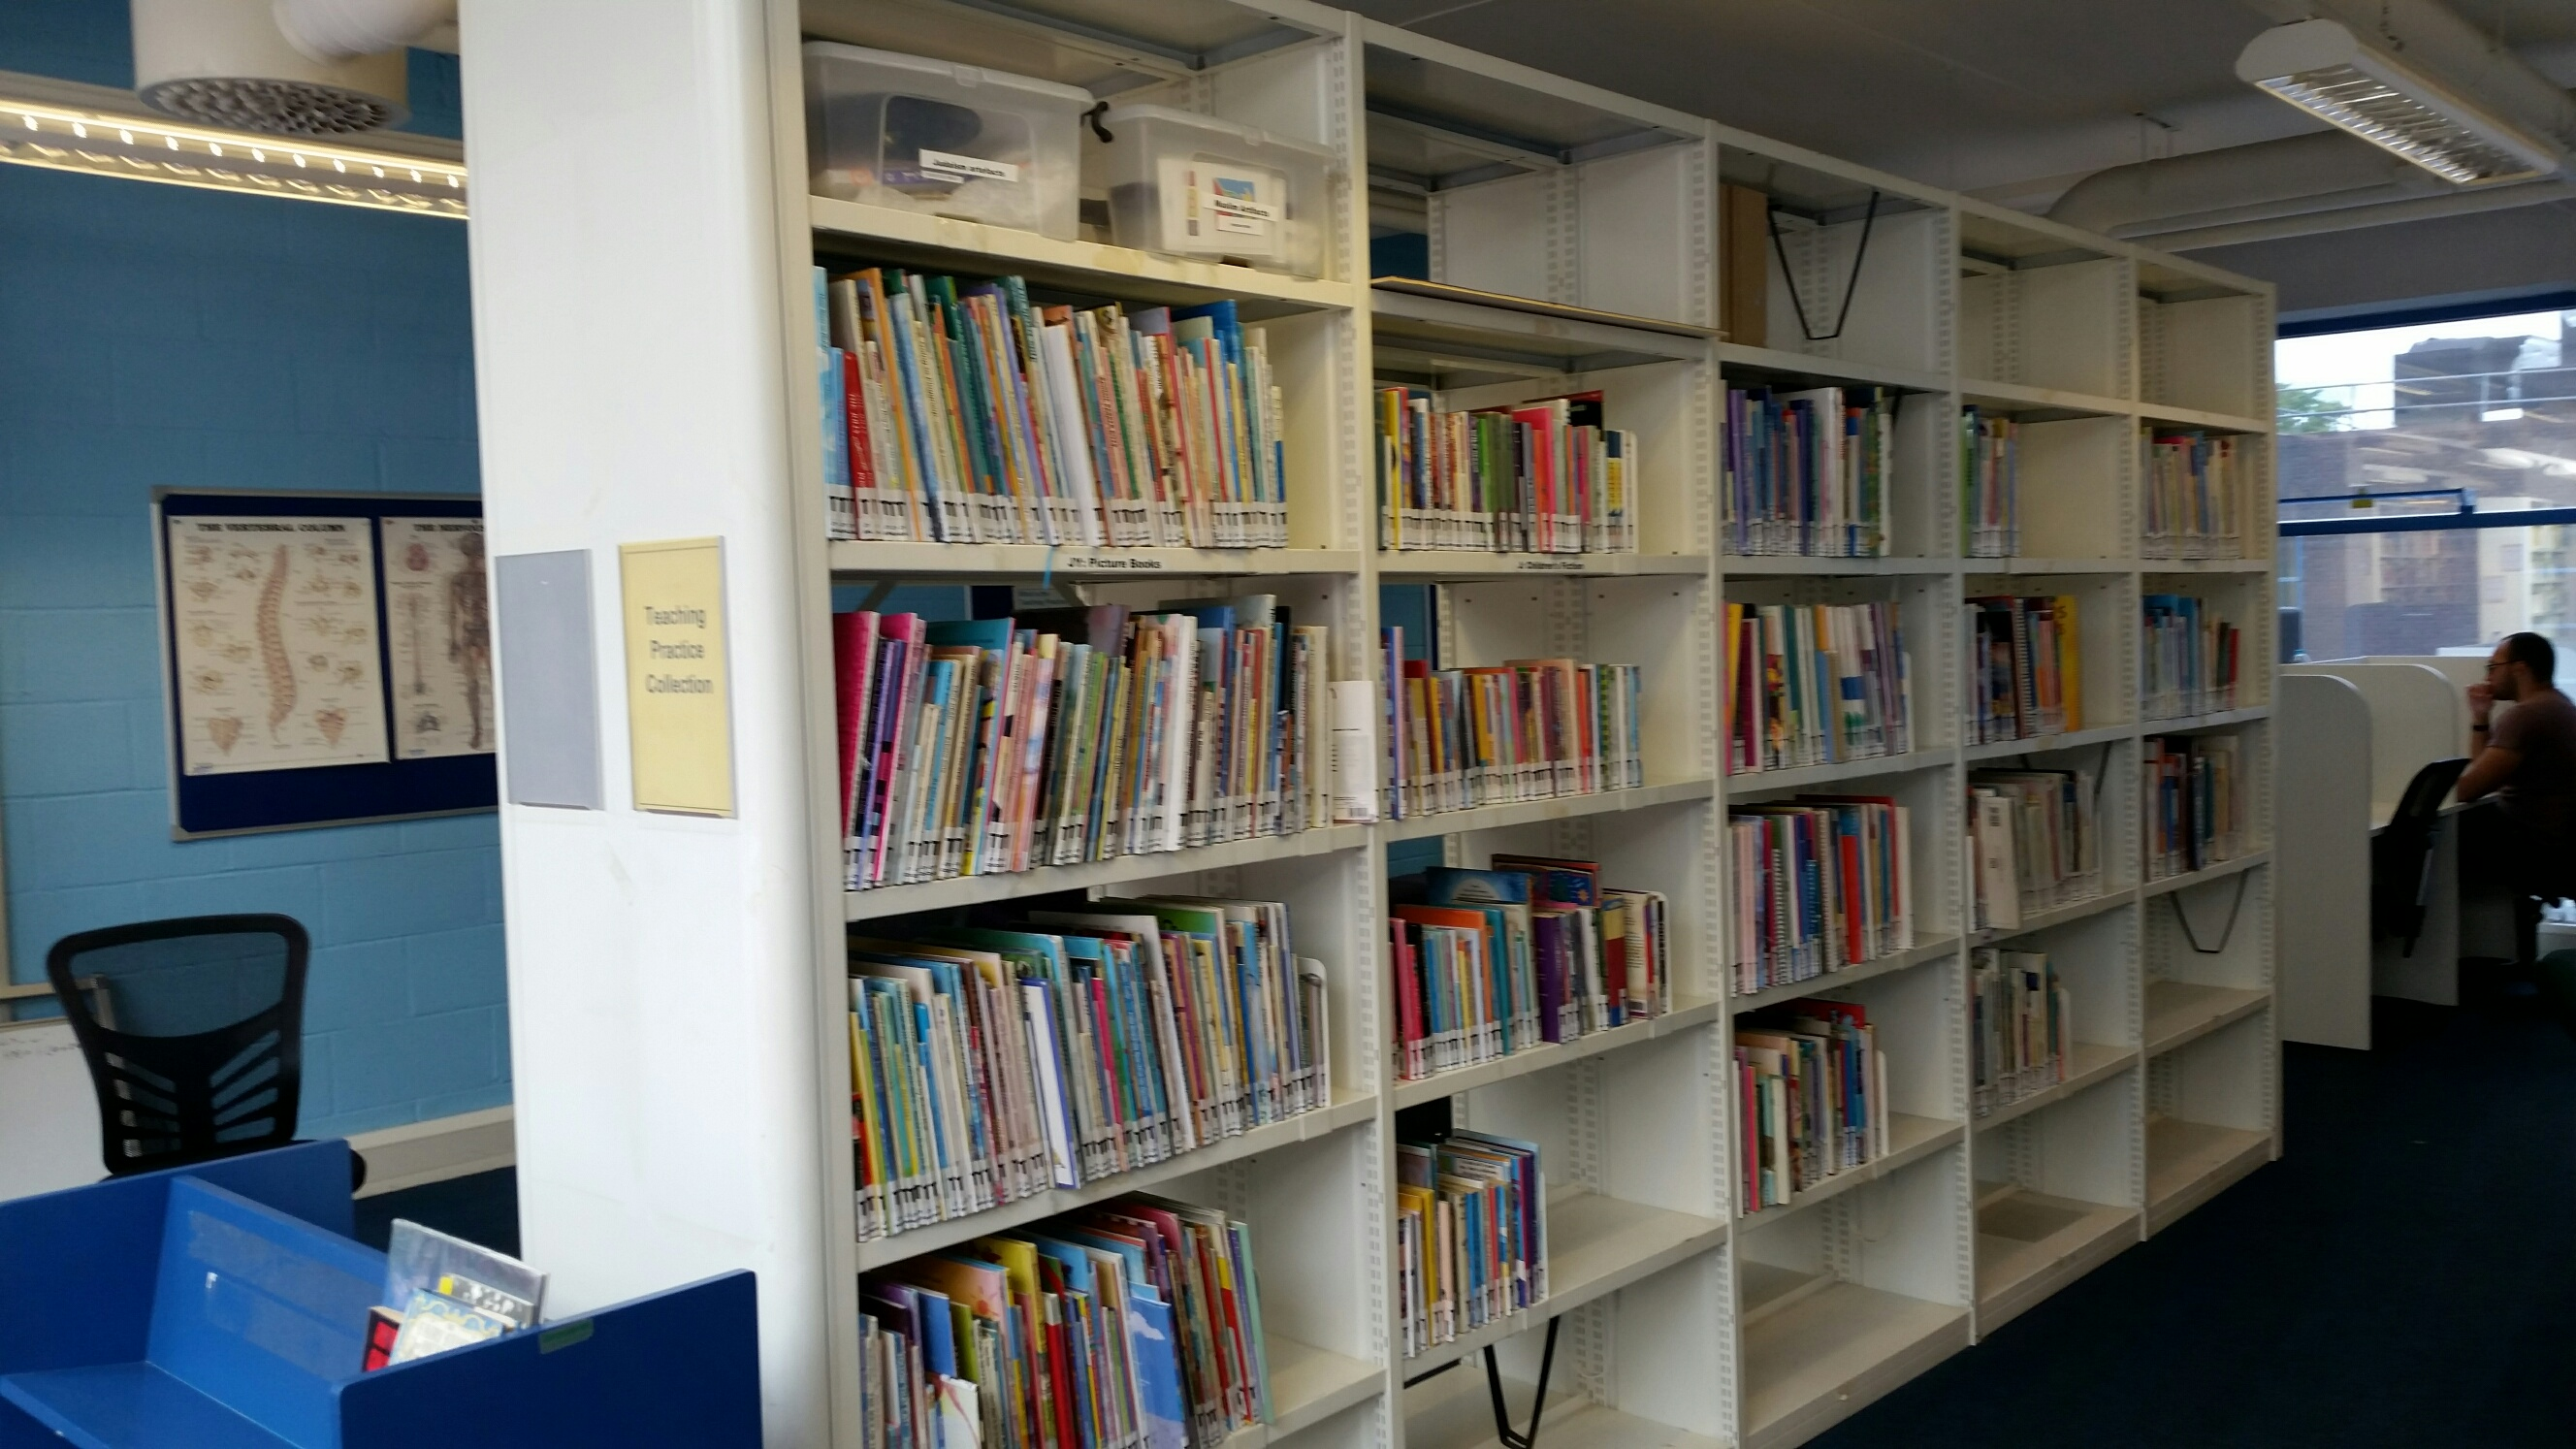 Book Shelves in the Perry Library